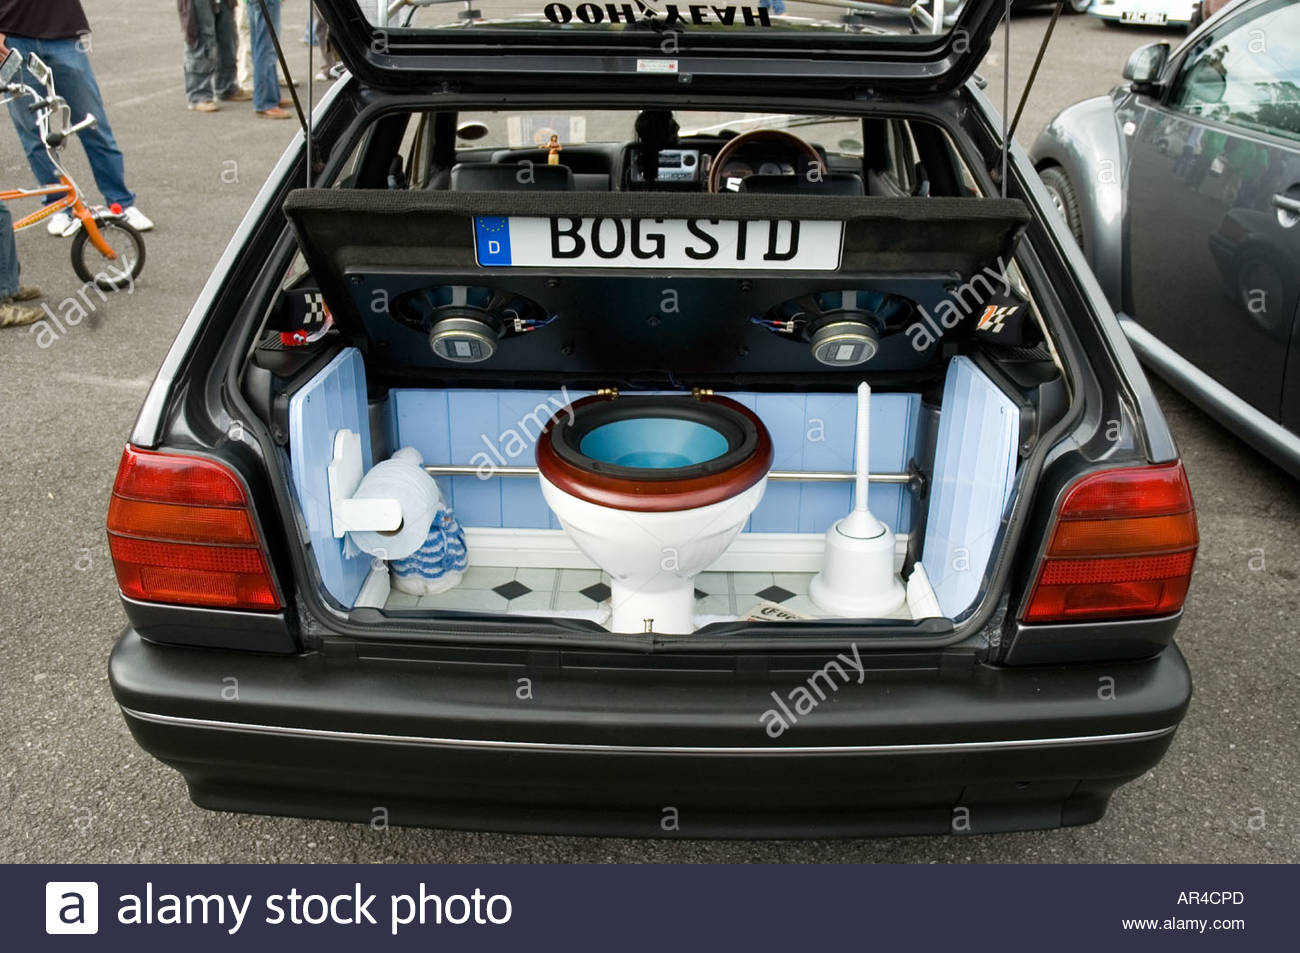 volkswagen-with-a-toilet-setup-in-the-boot-acting-as-a-speaker-bass-AR4CPD